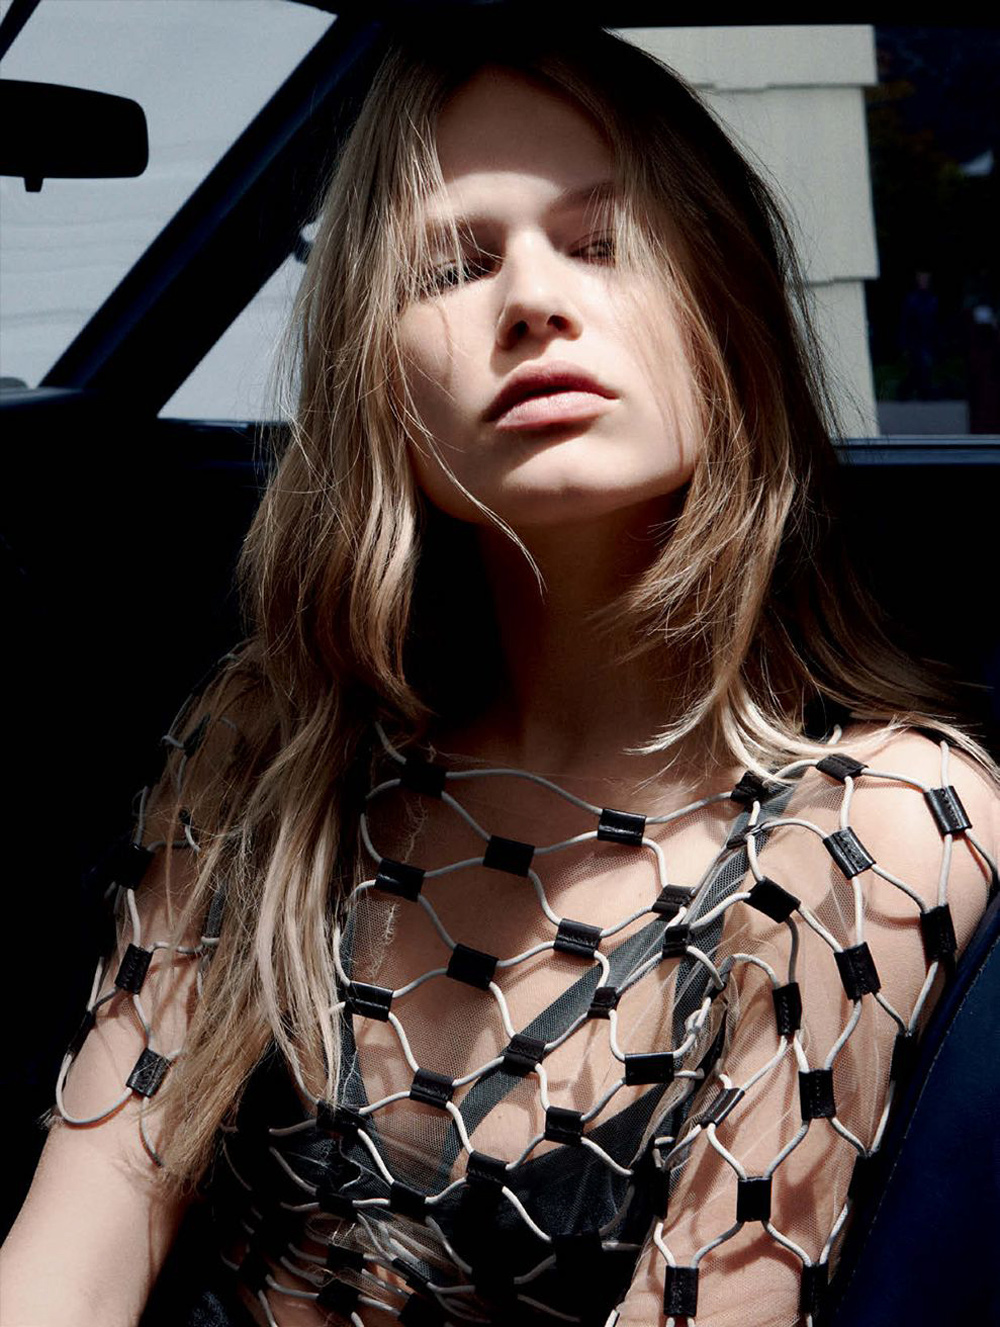 anna ewers, daniel jackson, vogue germany, fashion editorial, march, 2015, car, black, naked, louis vuitton bag